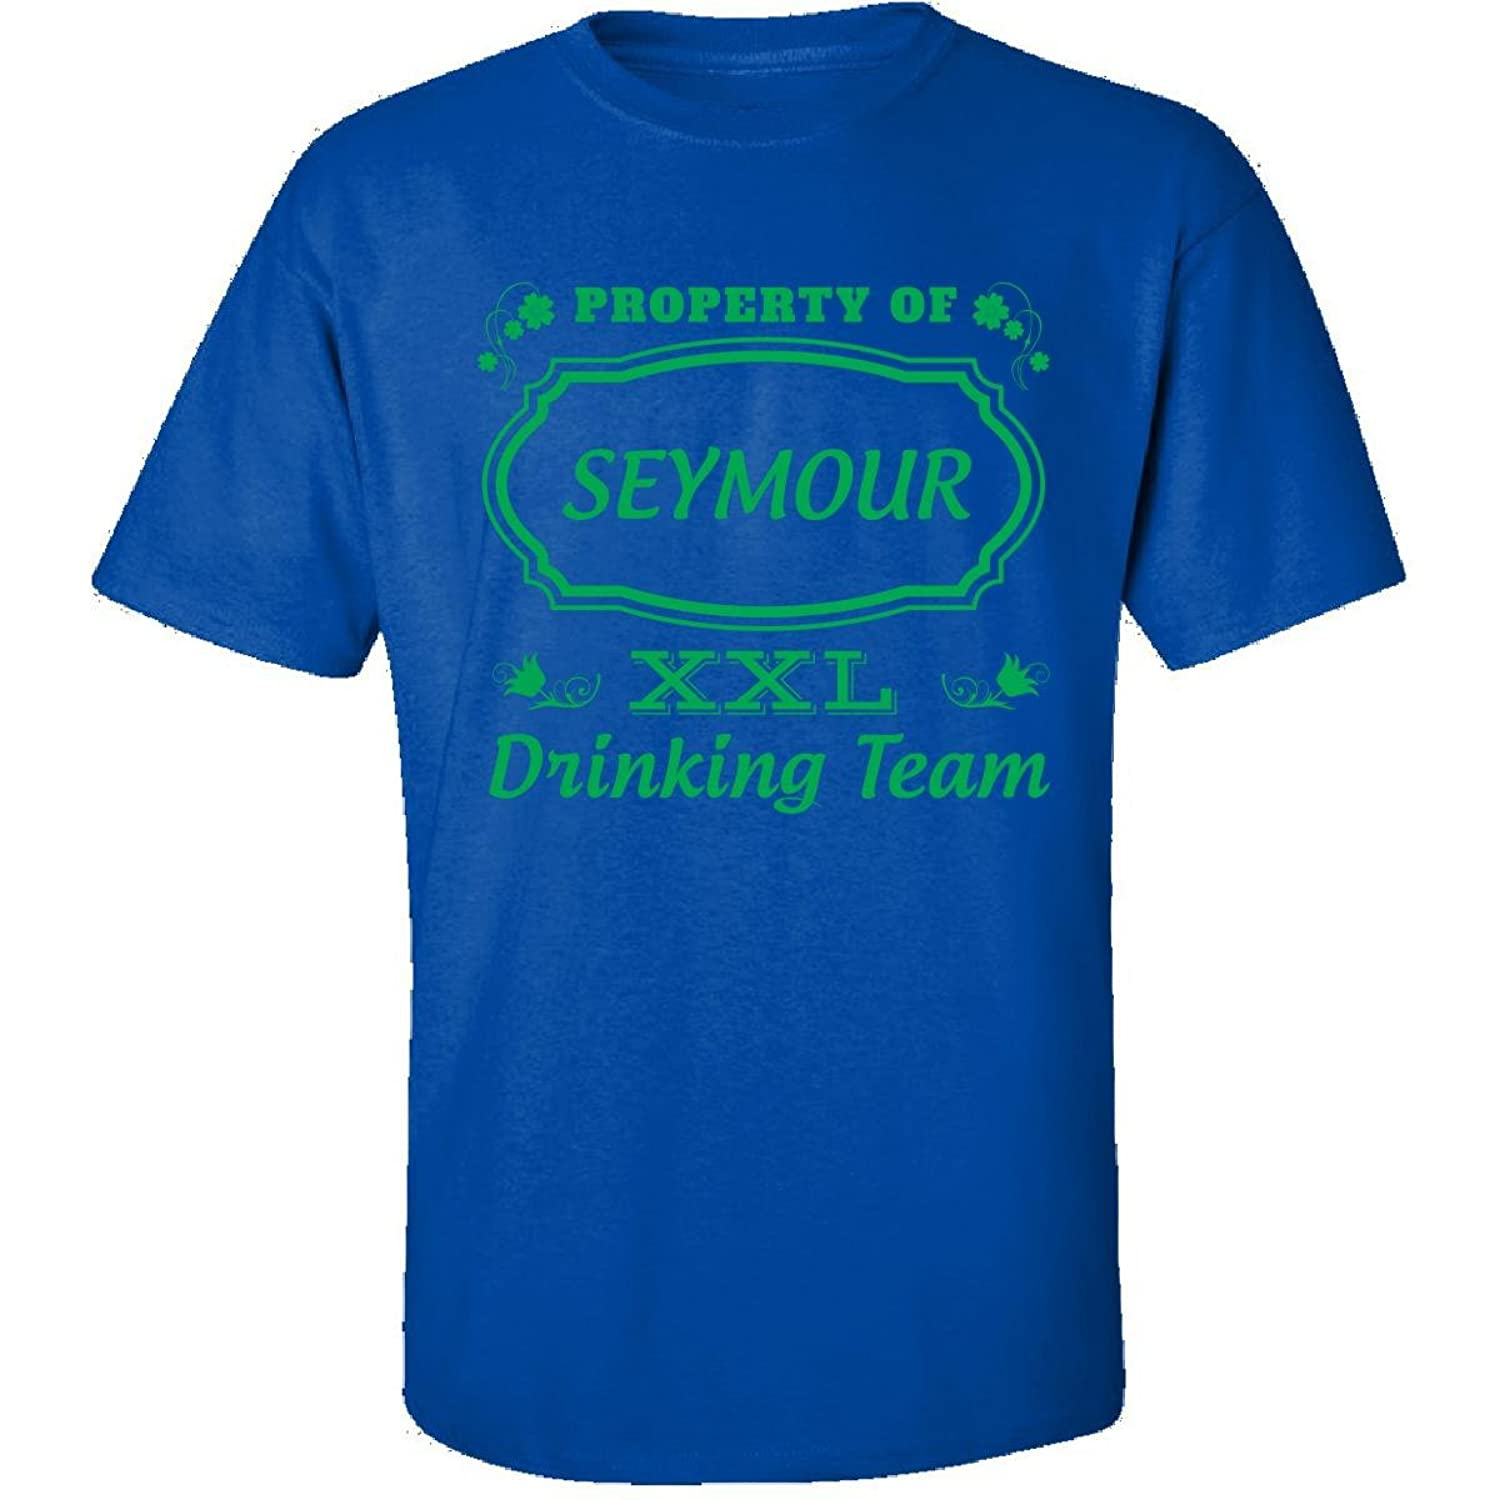 Property Of Seymour St Patrick Day Beer Drinking Team - Adult Shirt